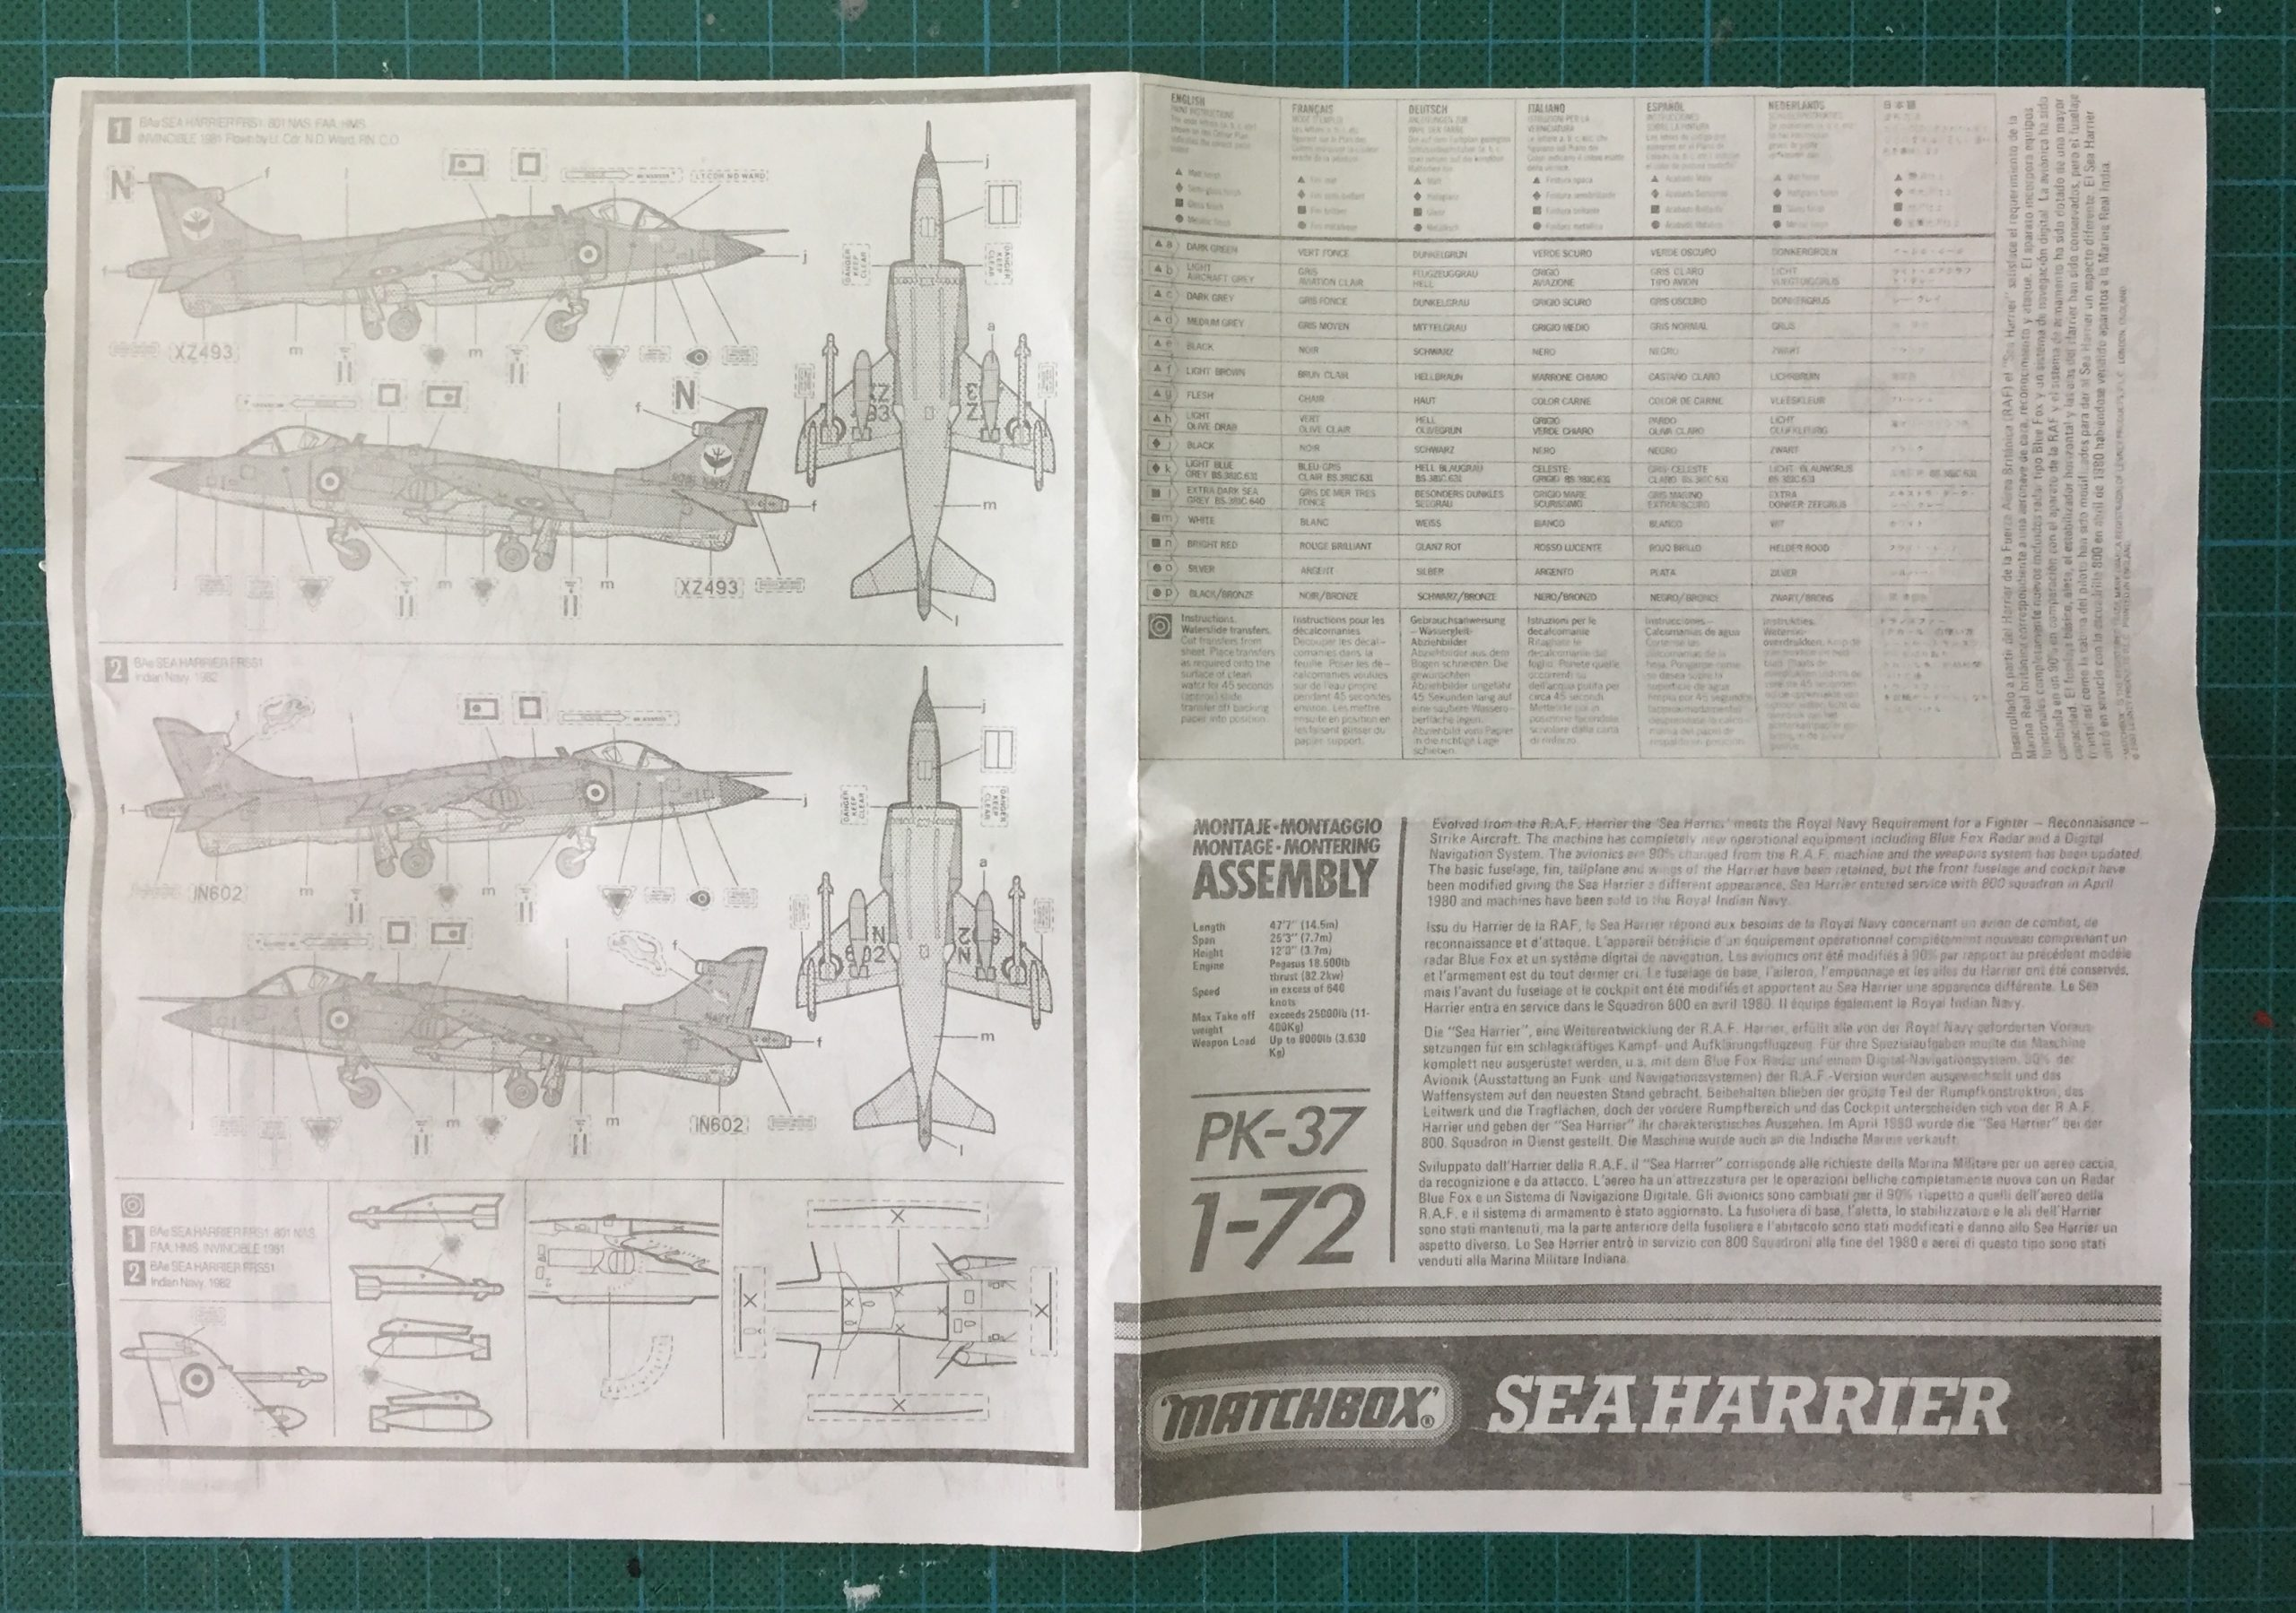 Matchbox 1/72 Sea Harrier instruction sheet, front.